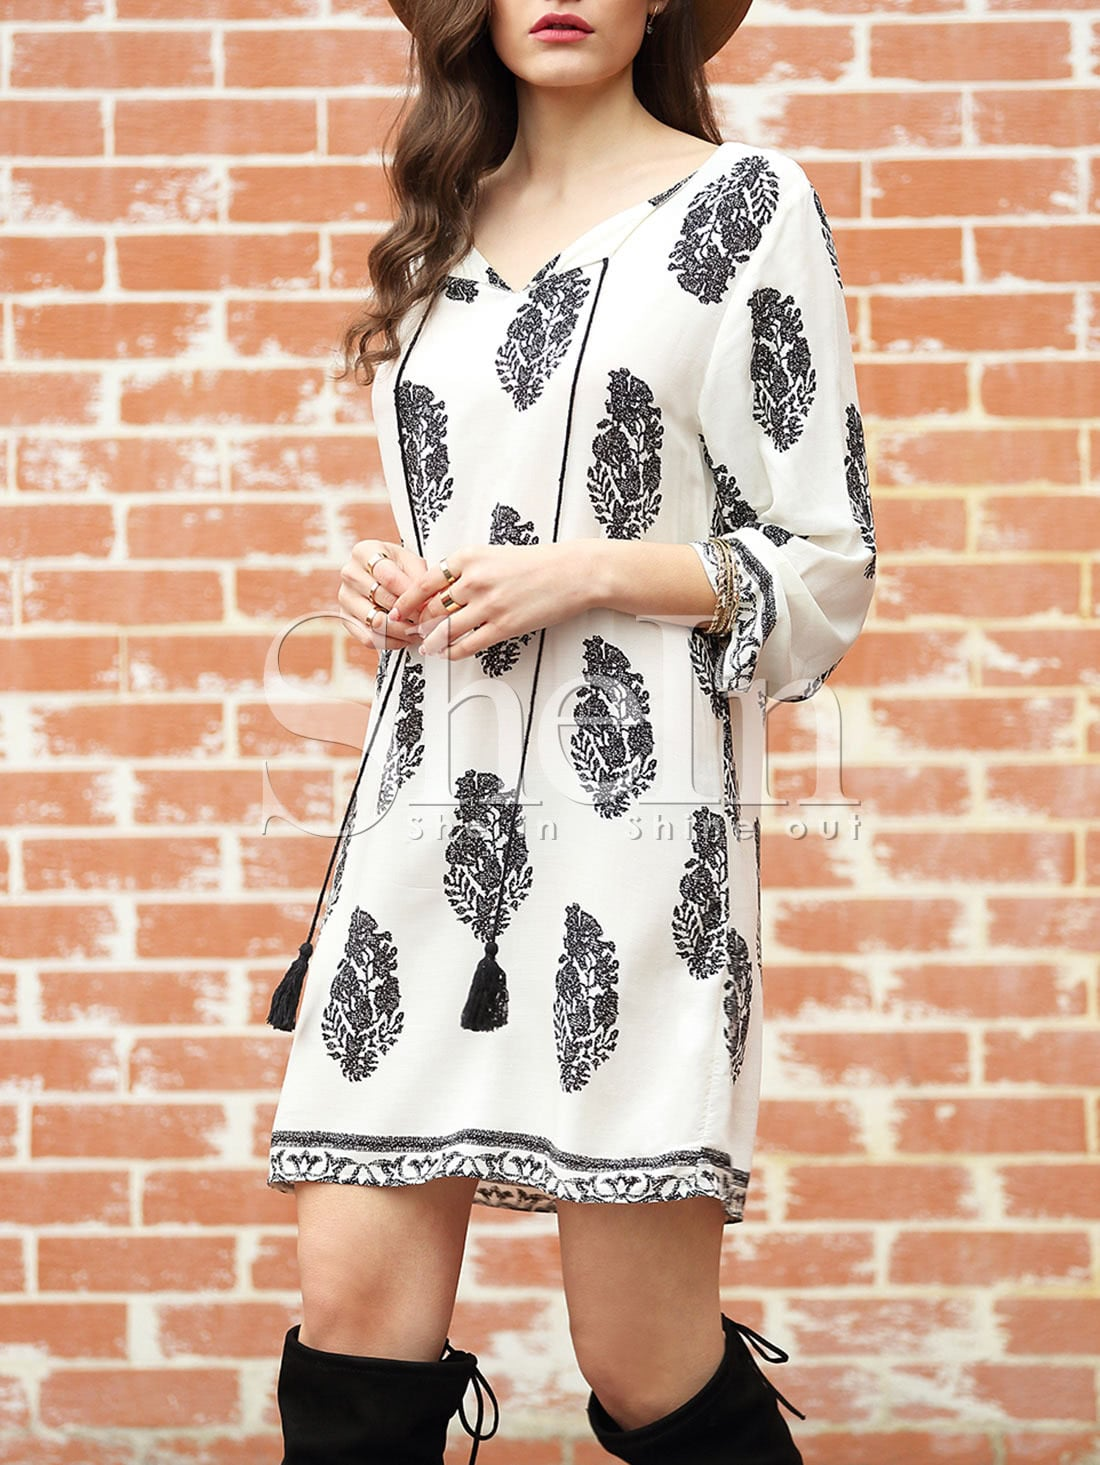 White Long Sleeve Lacing Floral Print DressWhite Long Sleeve Lacing Floral Print Dress<br><br>color: White<br>size: L,M,S,XL,XS,XXL